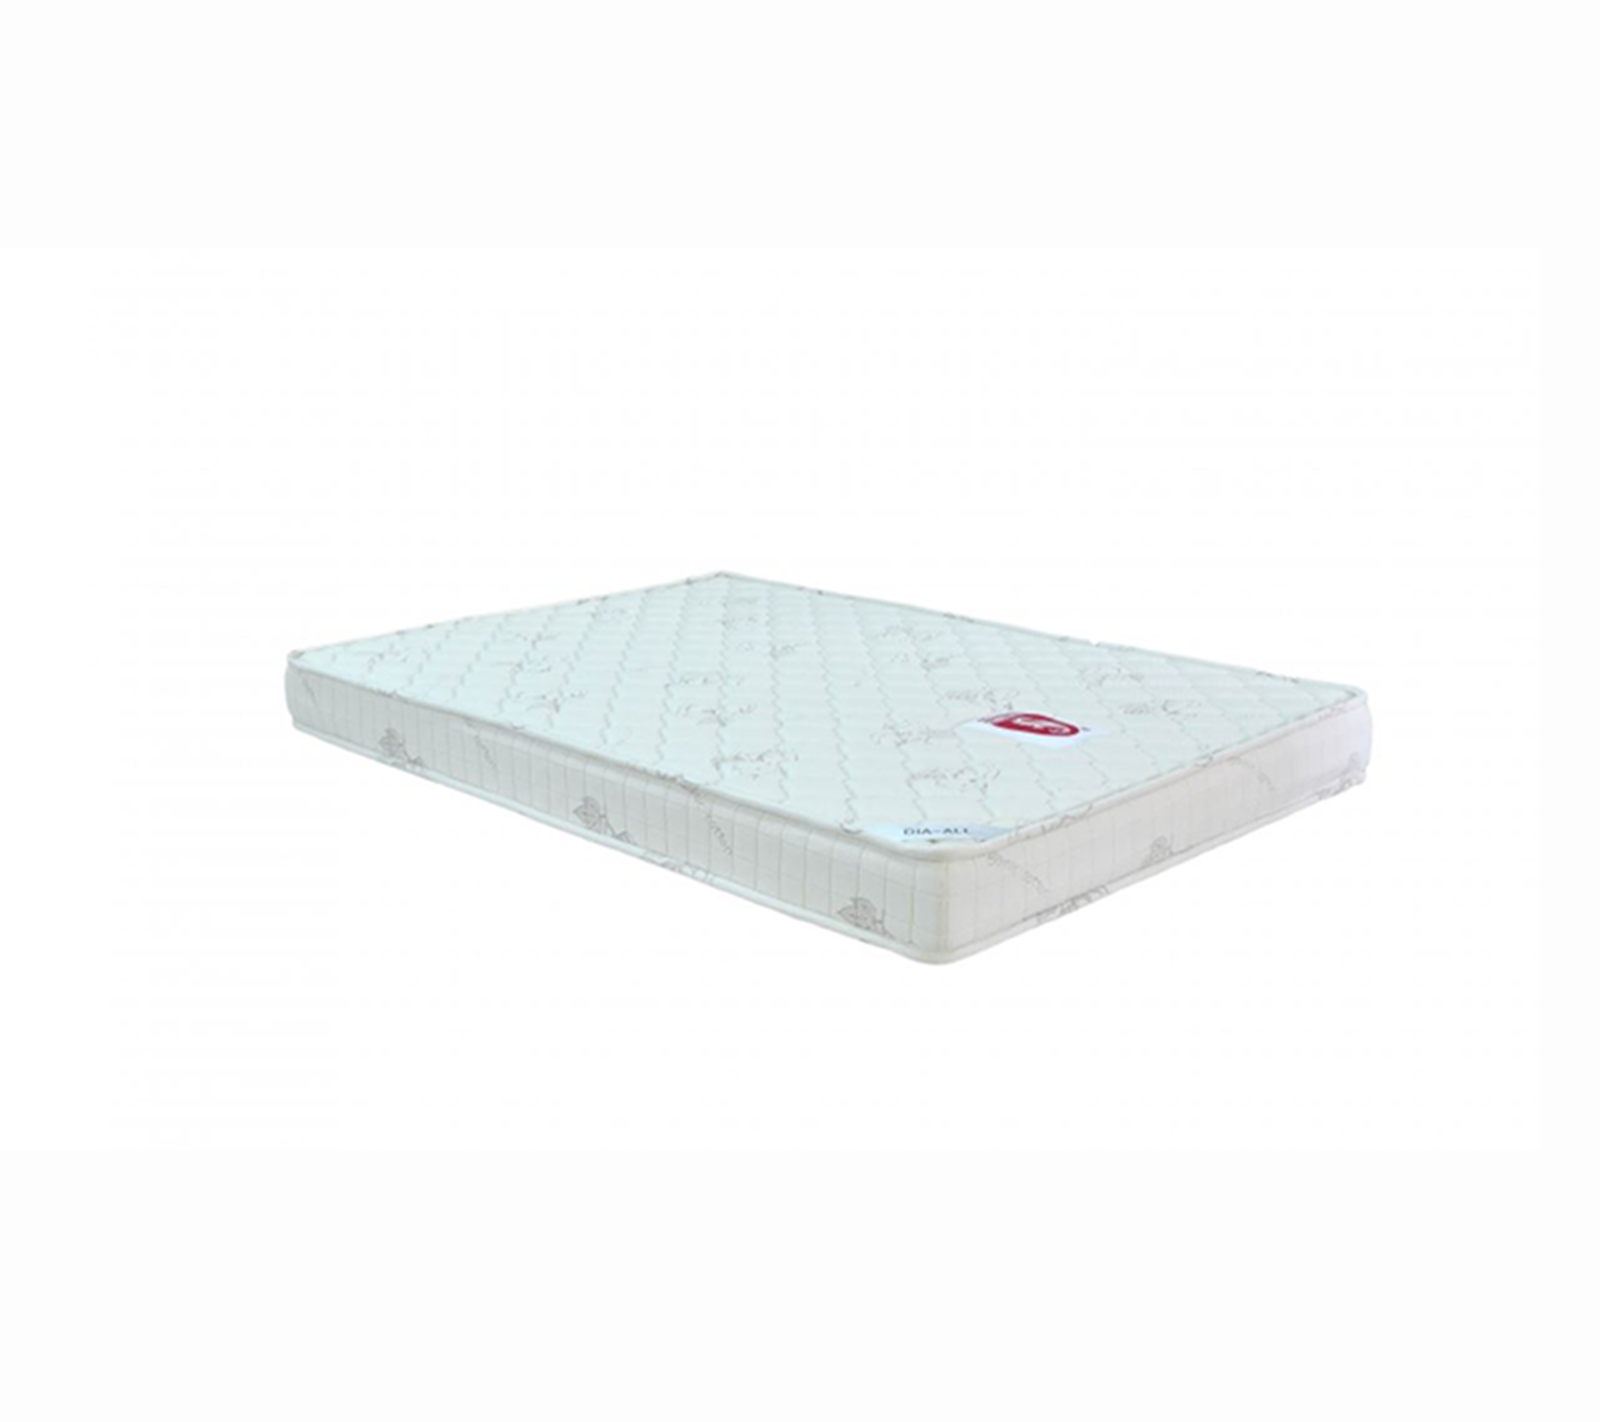 SEA HORSE Diamond Mattress